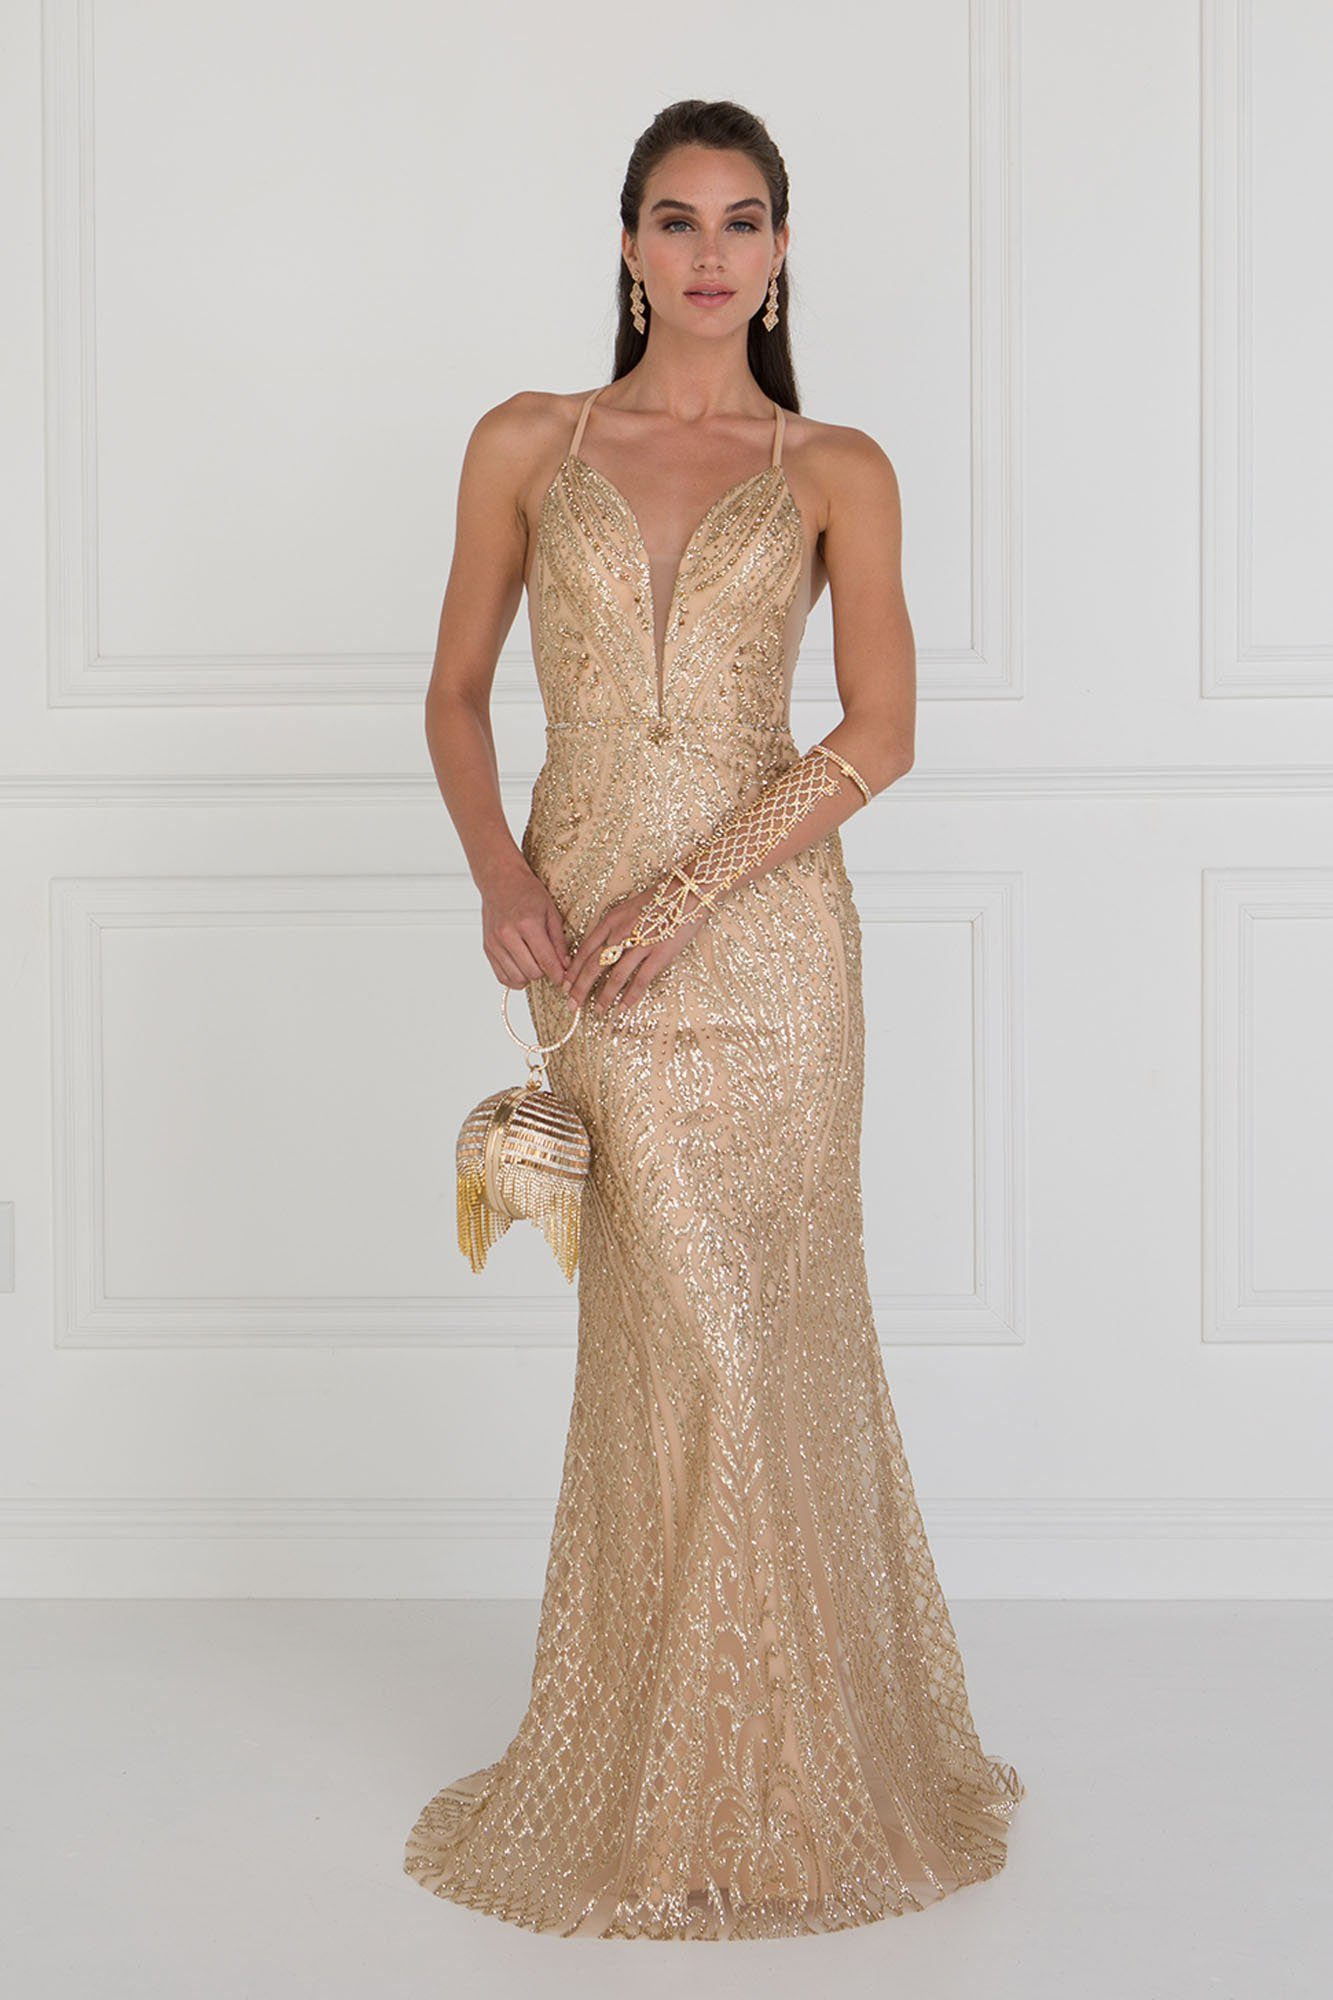 Sexy evening dresses fitted gowns simply fab dress sparkly sequins prom dress gls 1546g simply fab dress ombrellifo Gallery